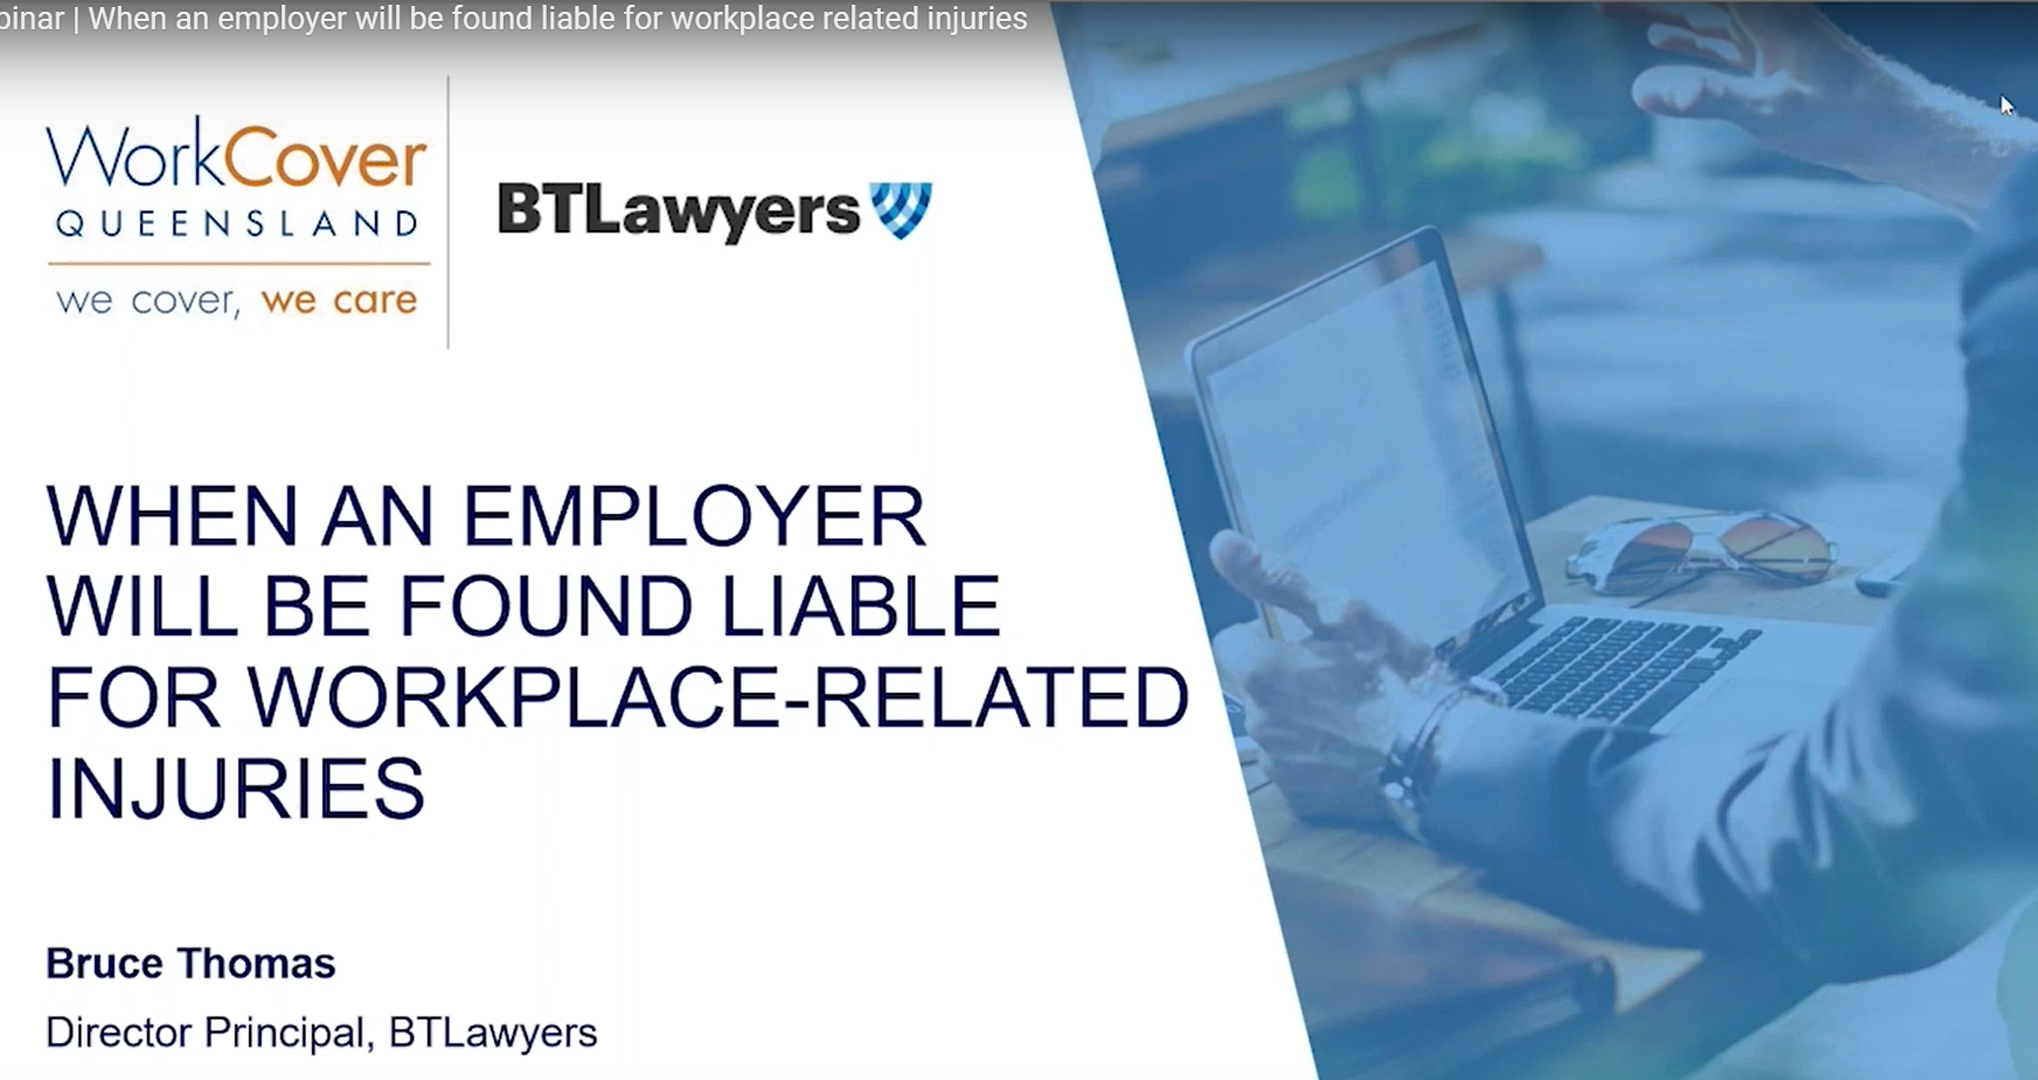 Video: When an Employer will be found liable for workplace-related injuries - BTLawyers